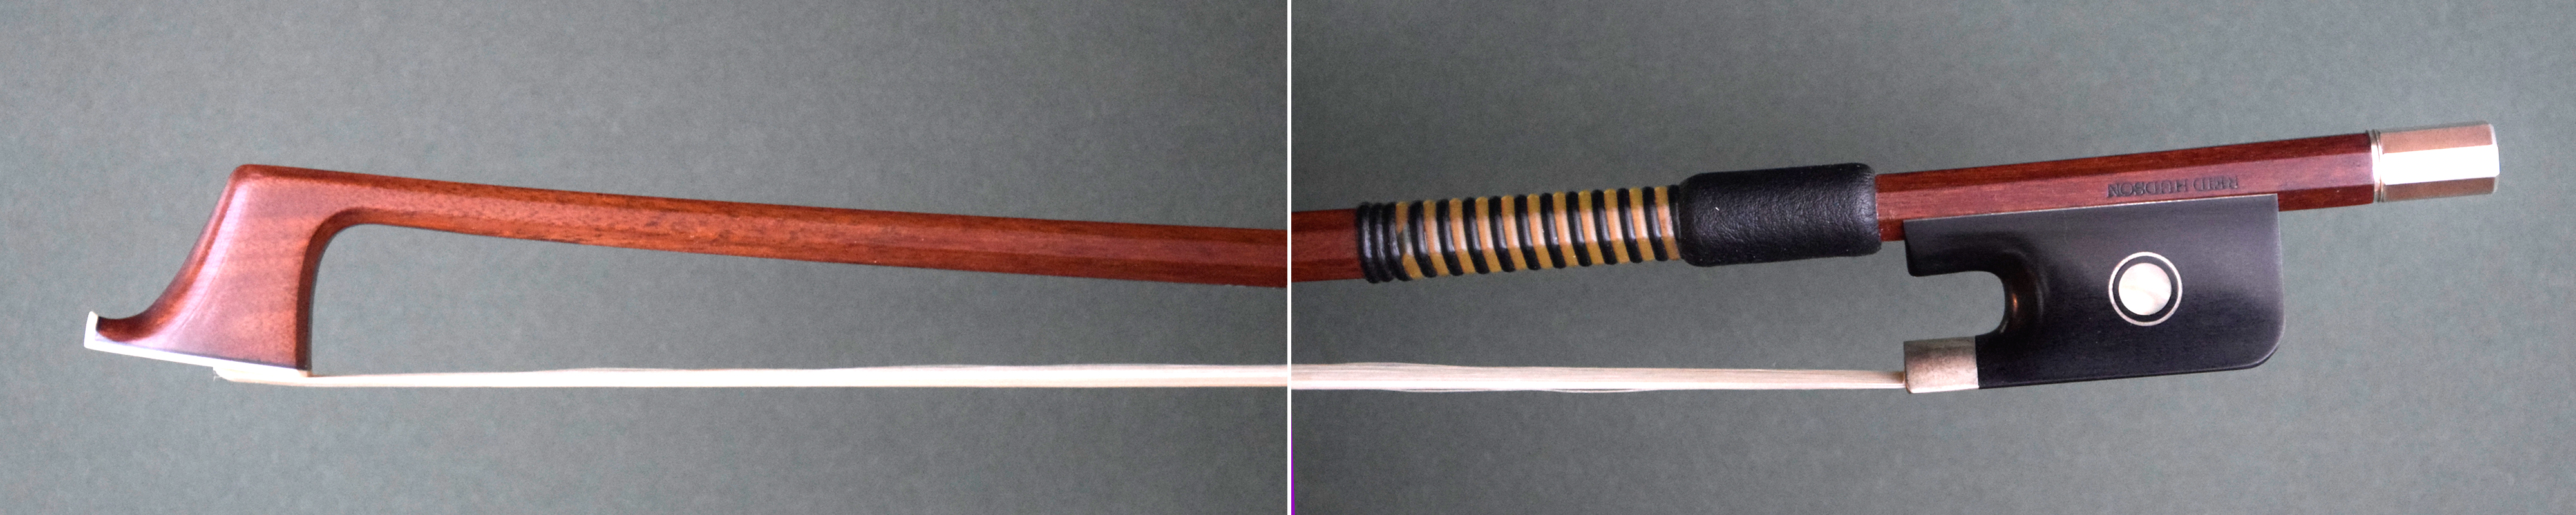 cello bow with an octagonal stick and whalebone wrap.